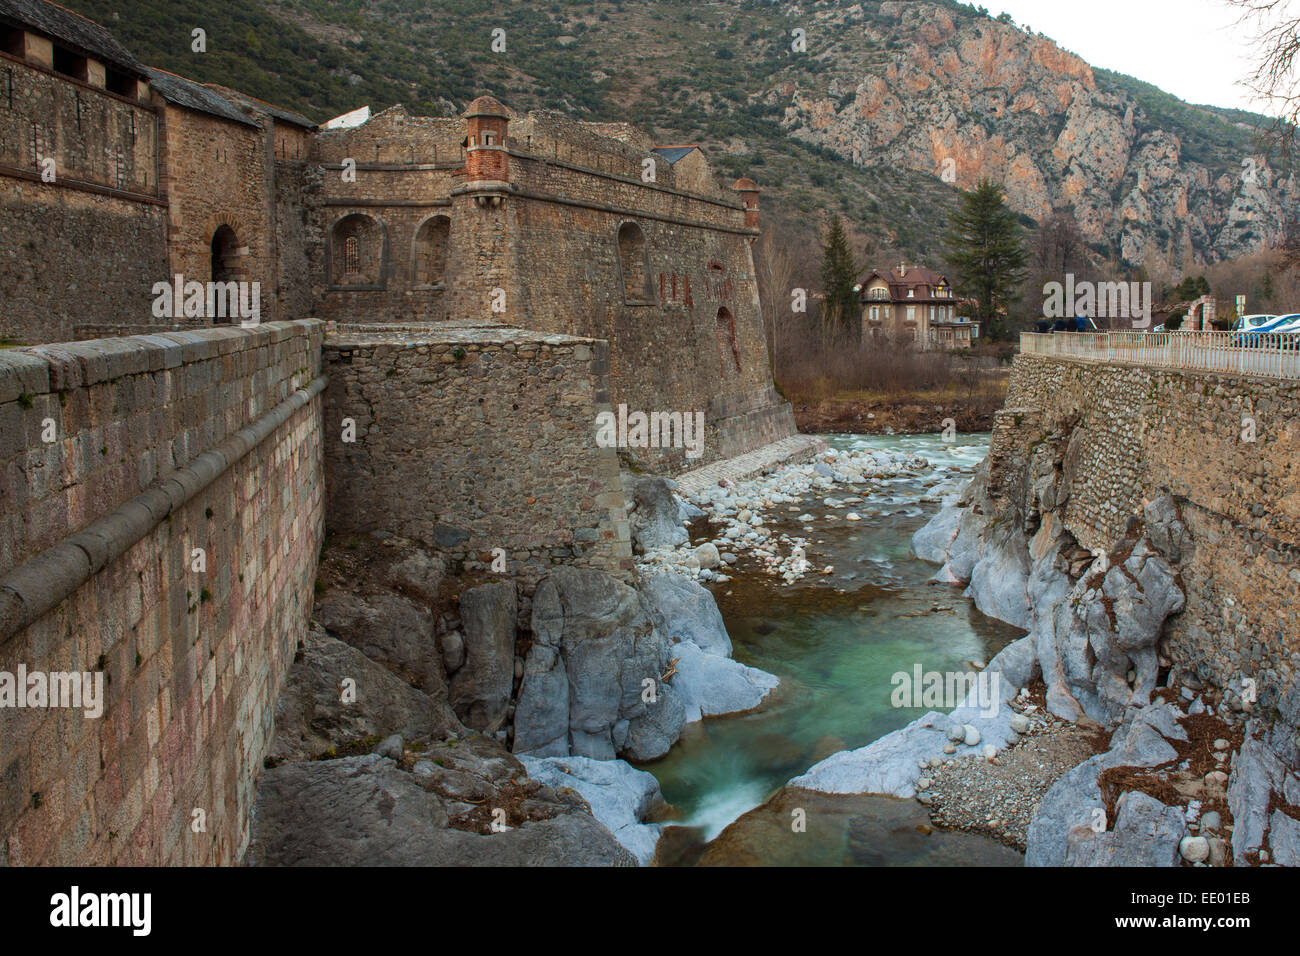 Villefranche-de-Conflent, a Vauban-designed fortified town at the confluence of the rivers Tet & Cady in the - Stock Image